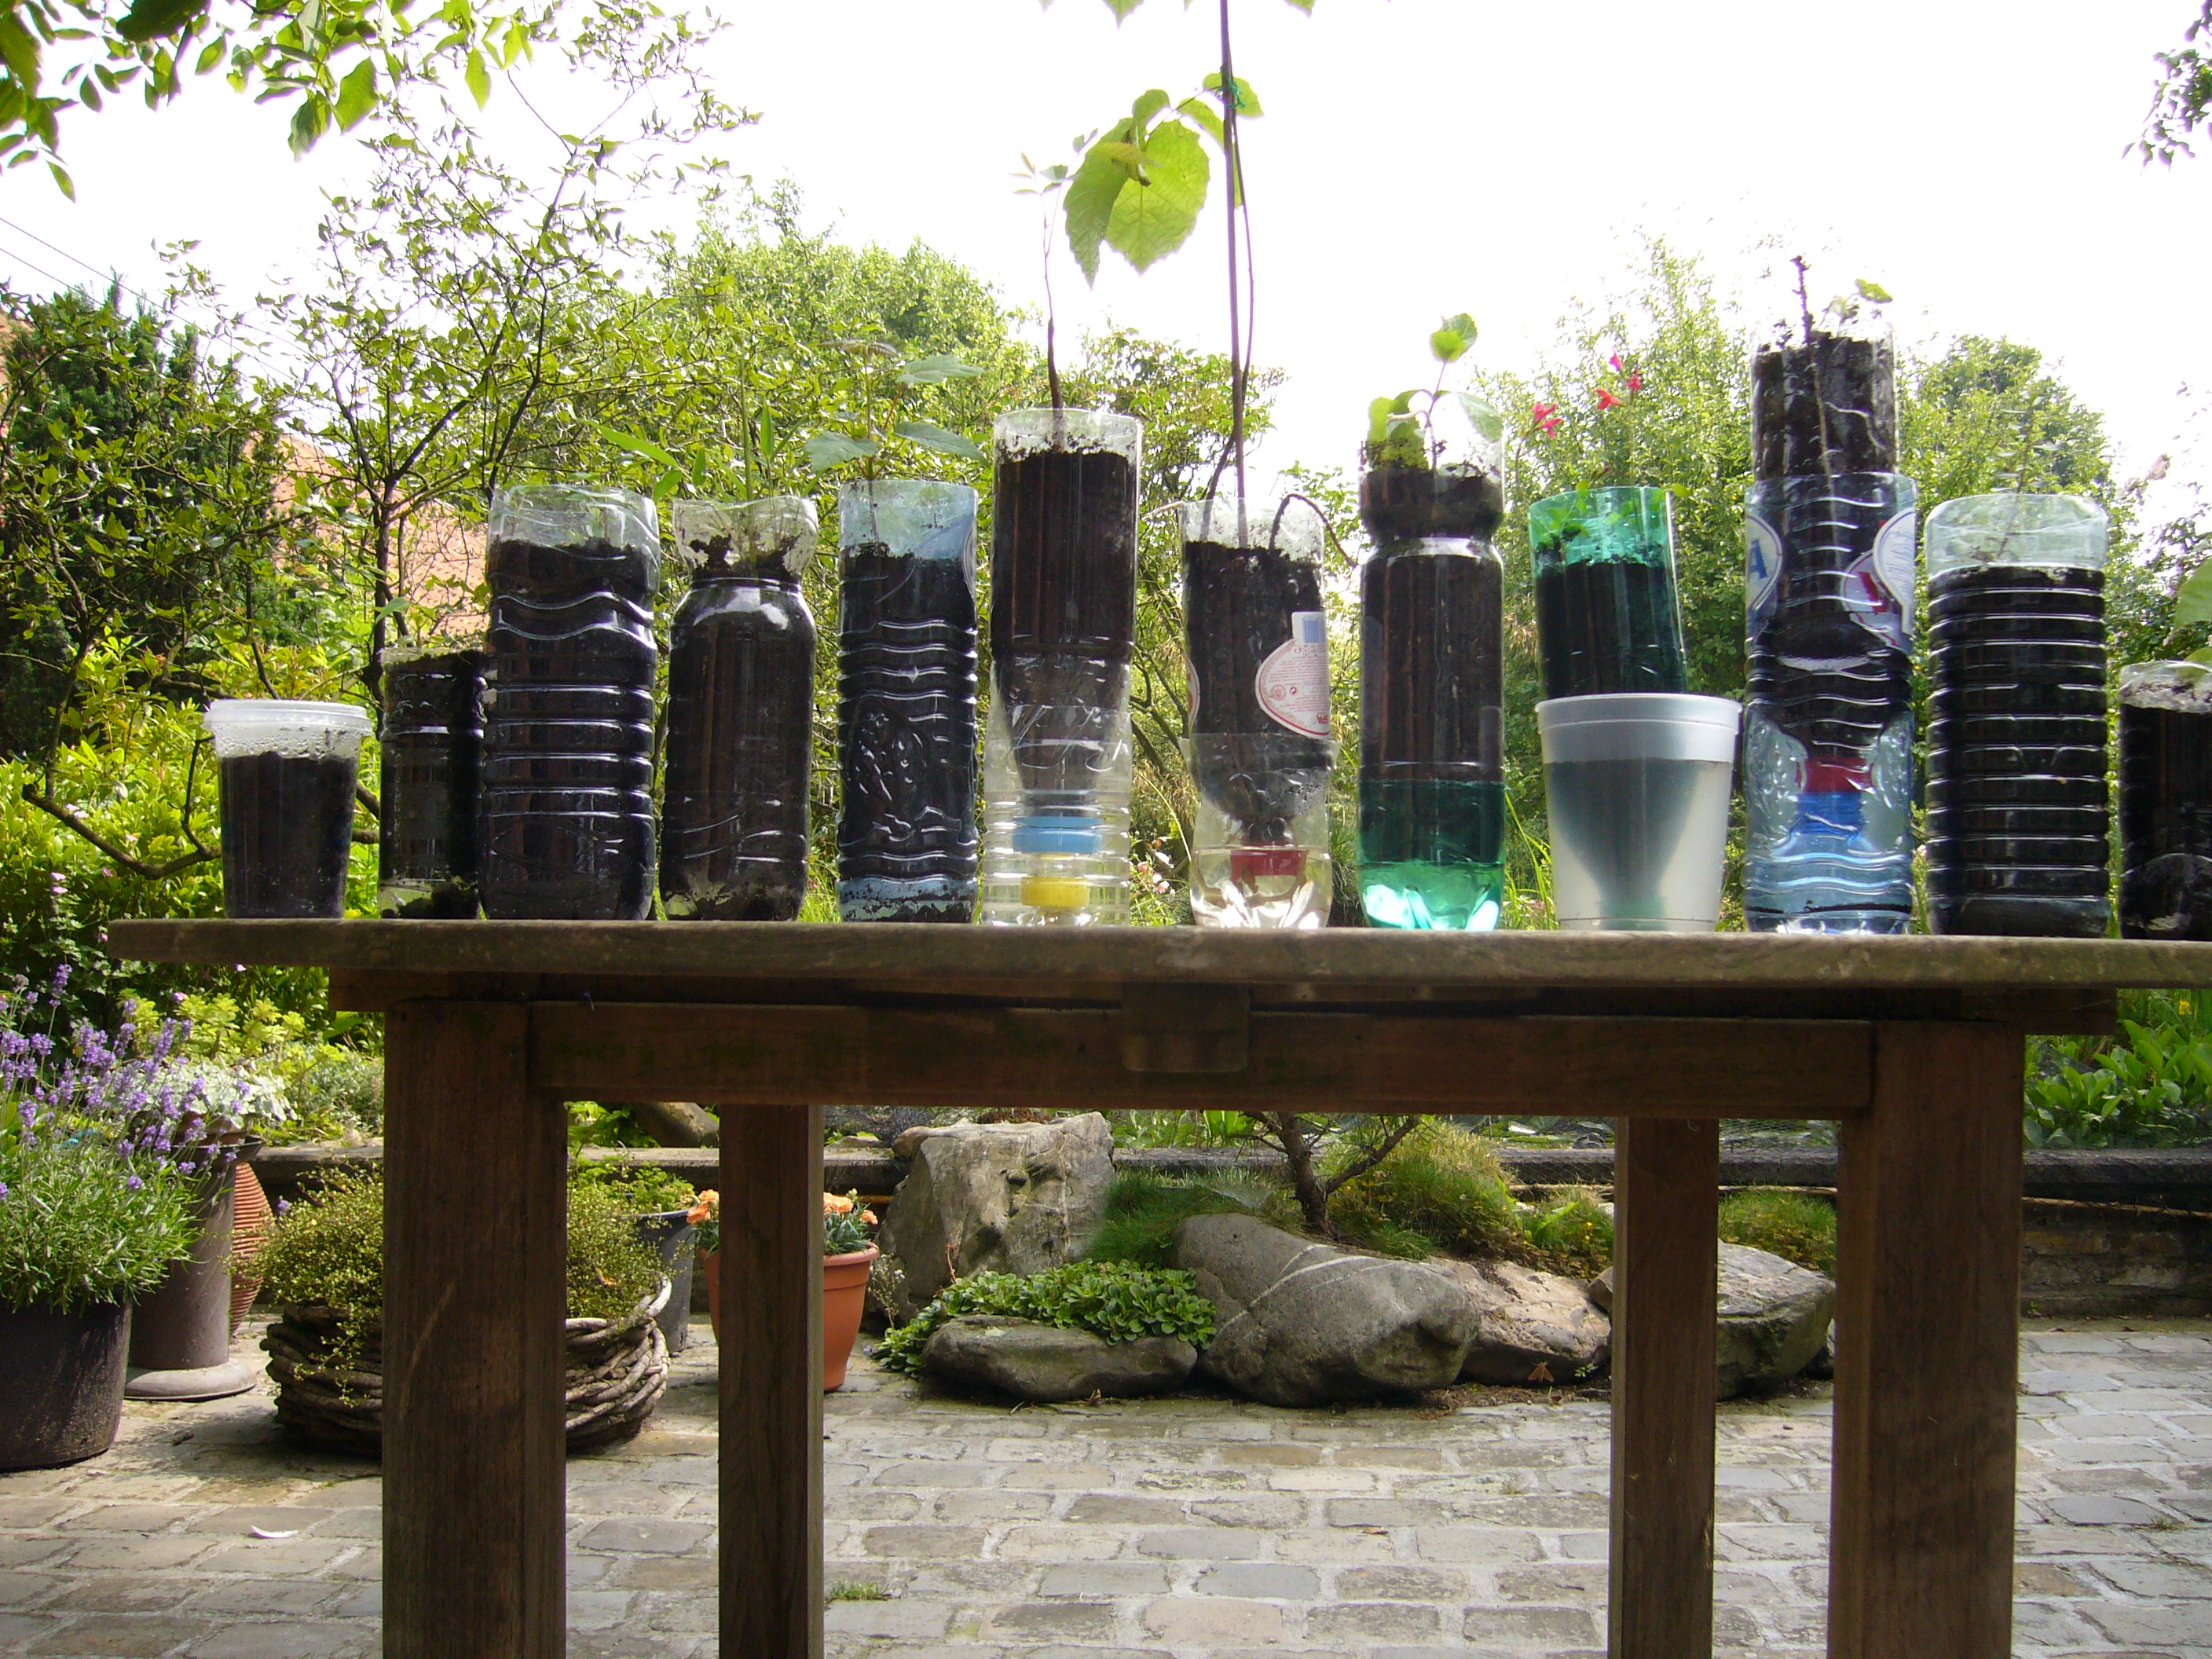 Types of containers one can use for gardening